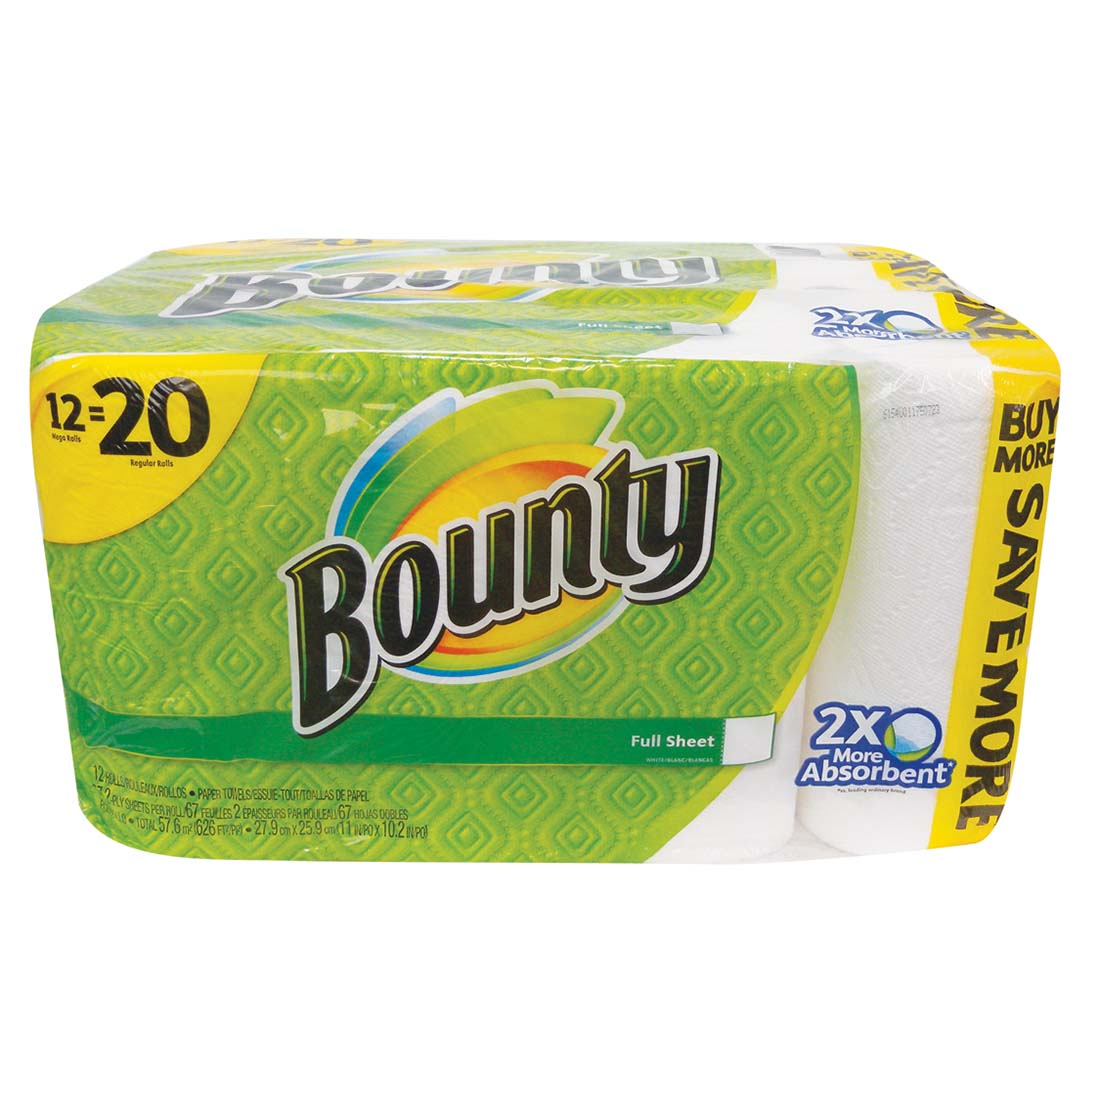 "View BOUNTY PAPER TOWELS 12 PACK 67-2 PLY SHEETS ""NOT INDIVIDUALLY WRAPPED"" **LIMIT 20**"